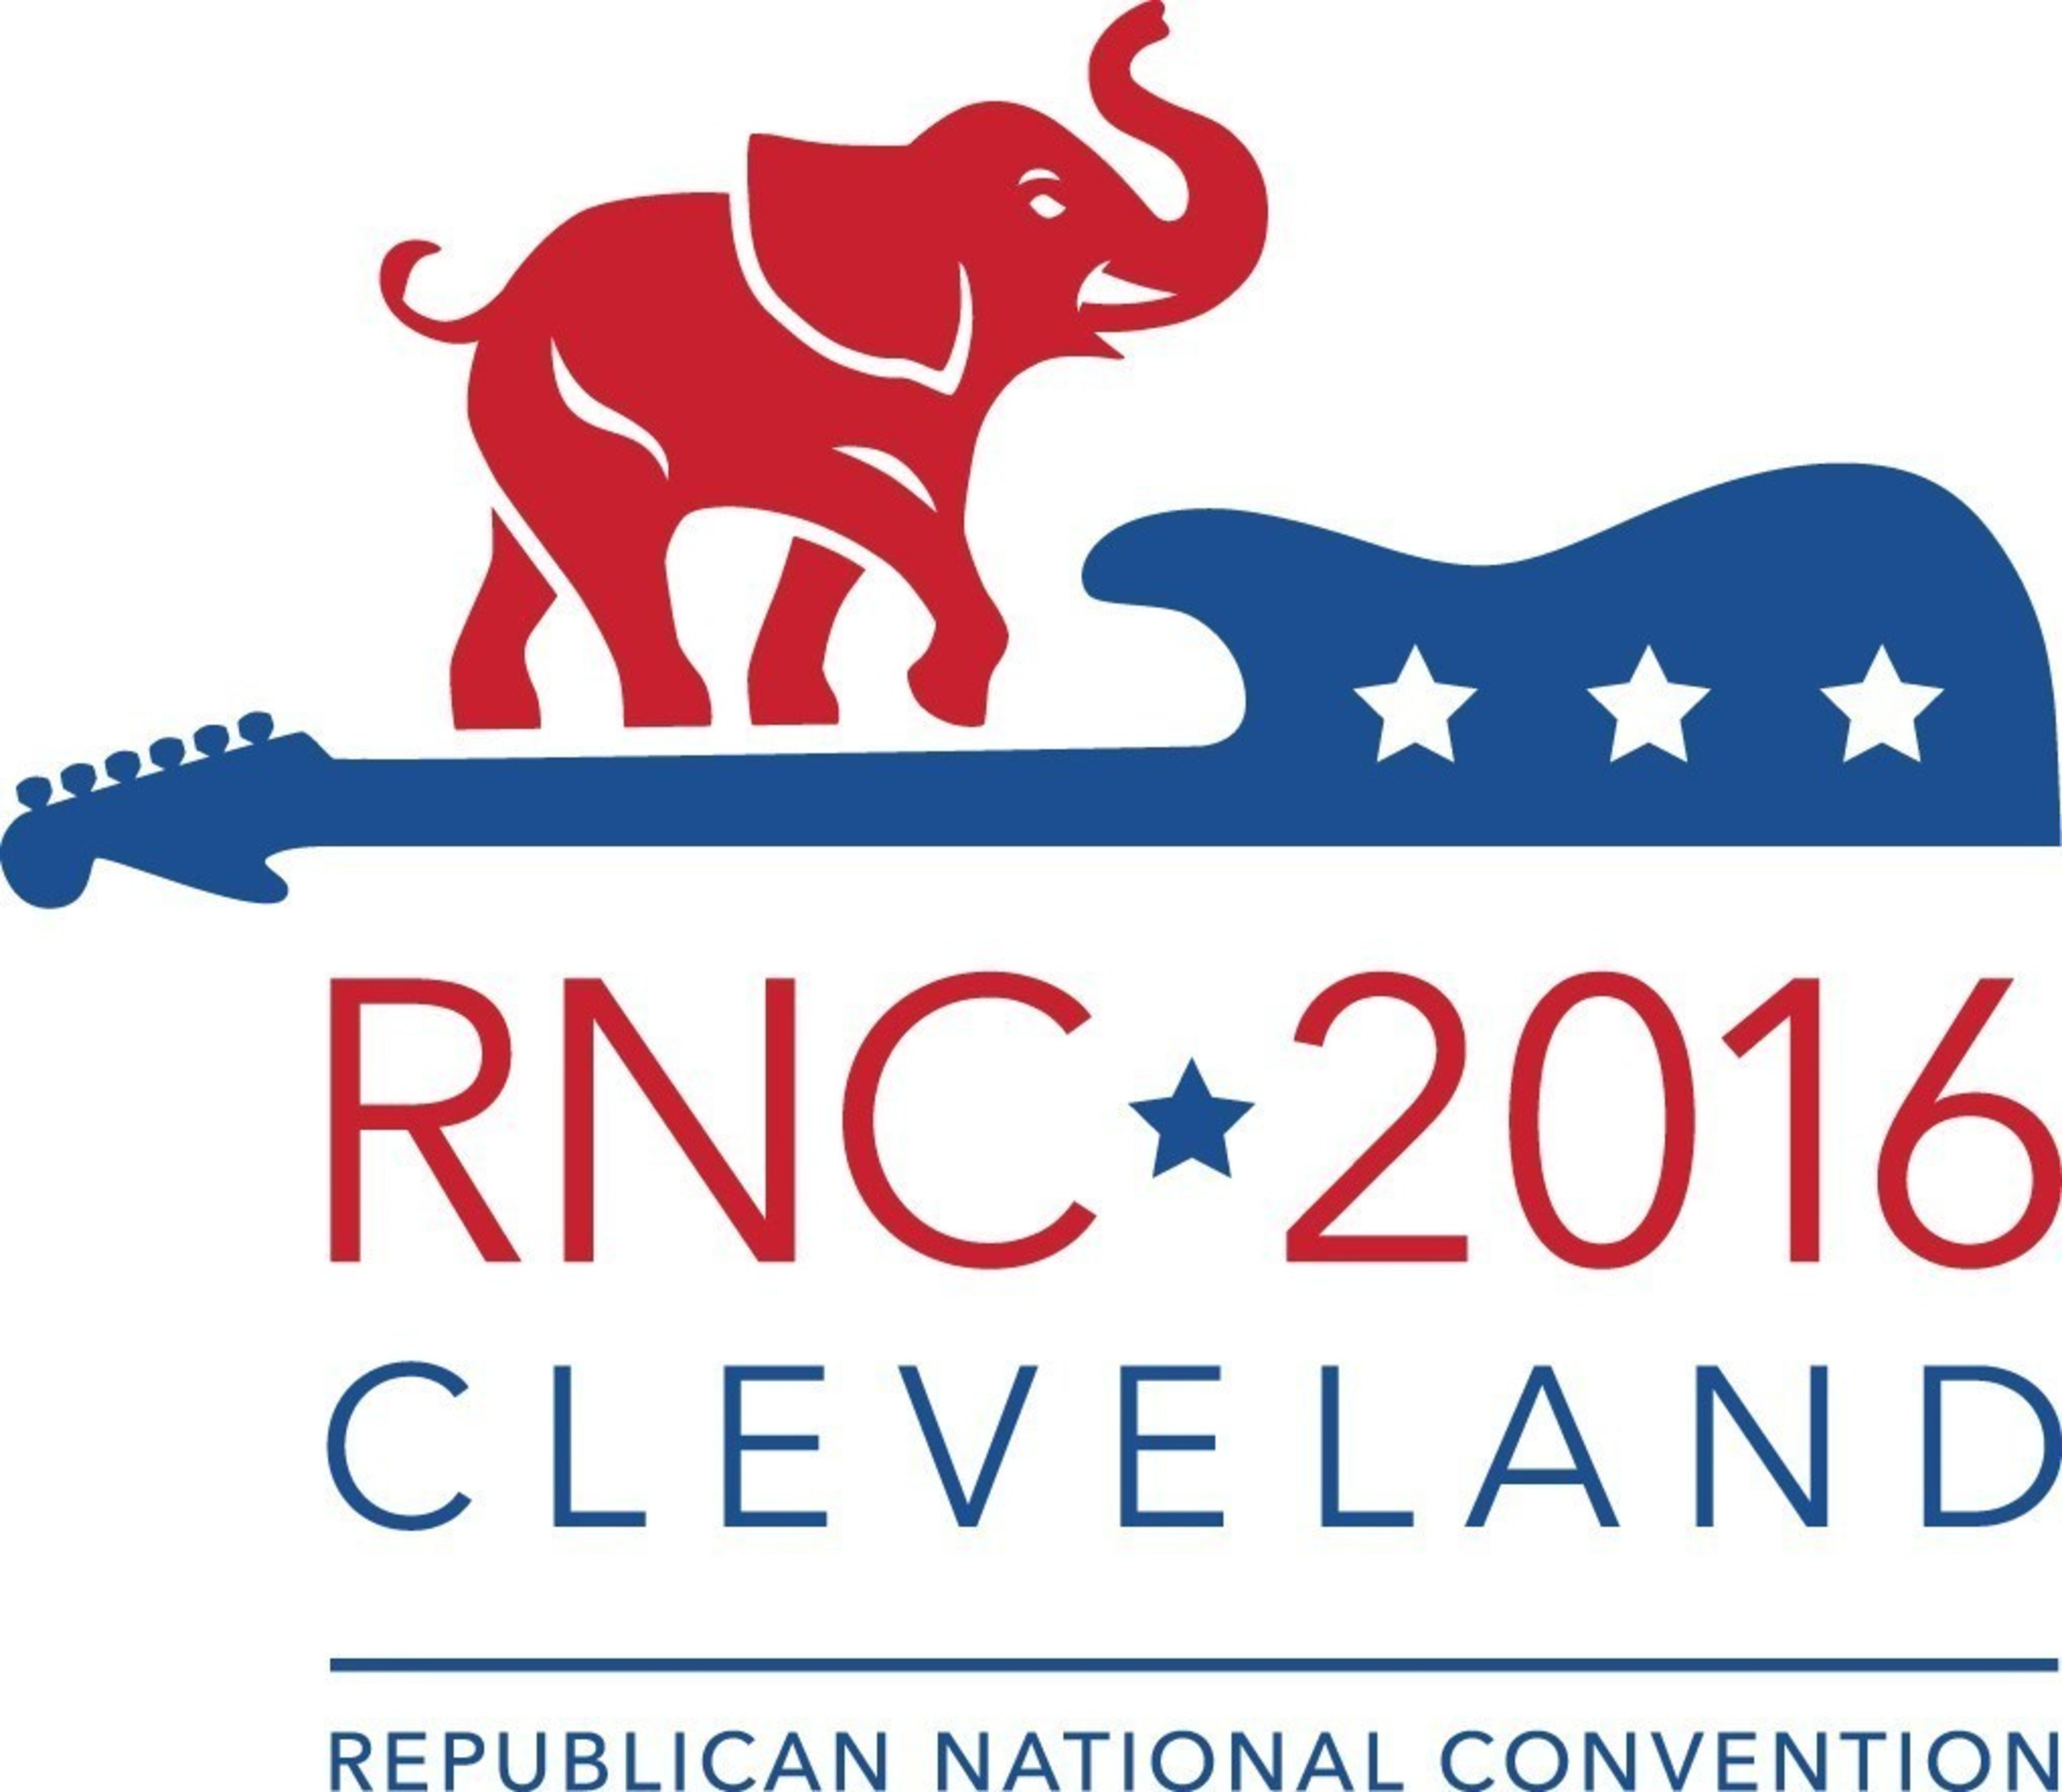 GOP Convention features turn-by-turn directions inside Convention Complex